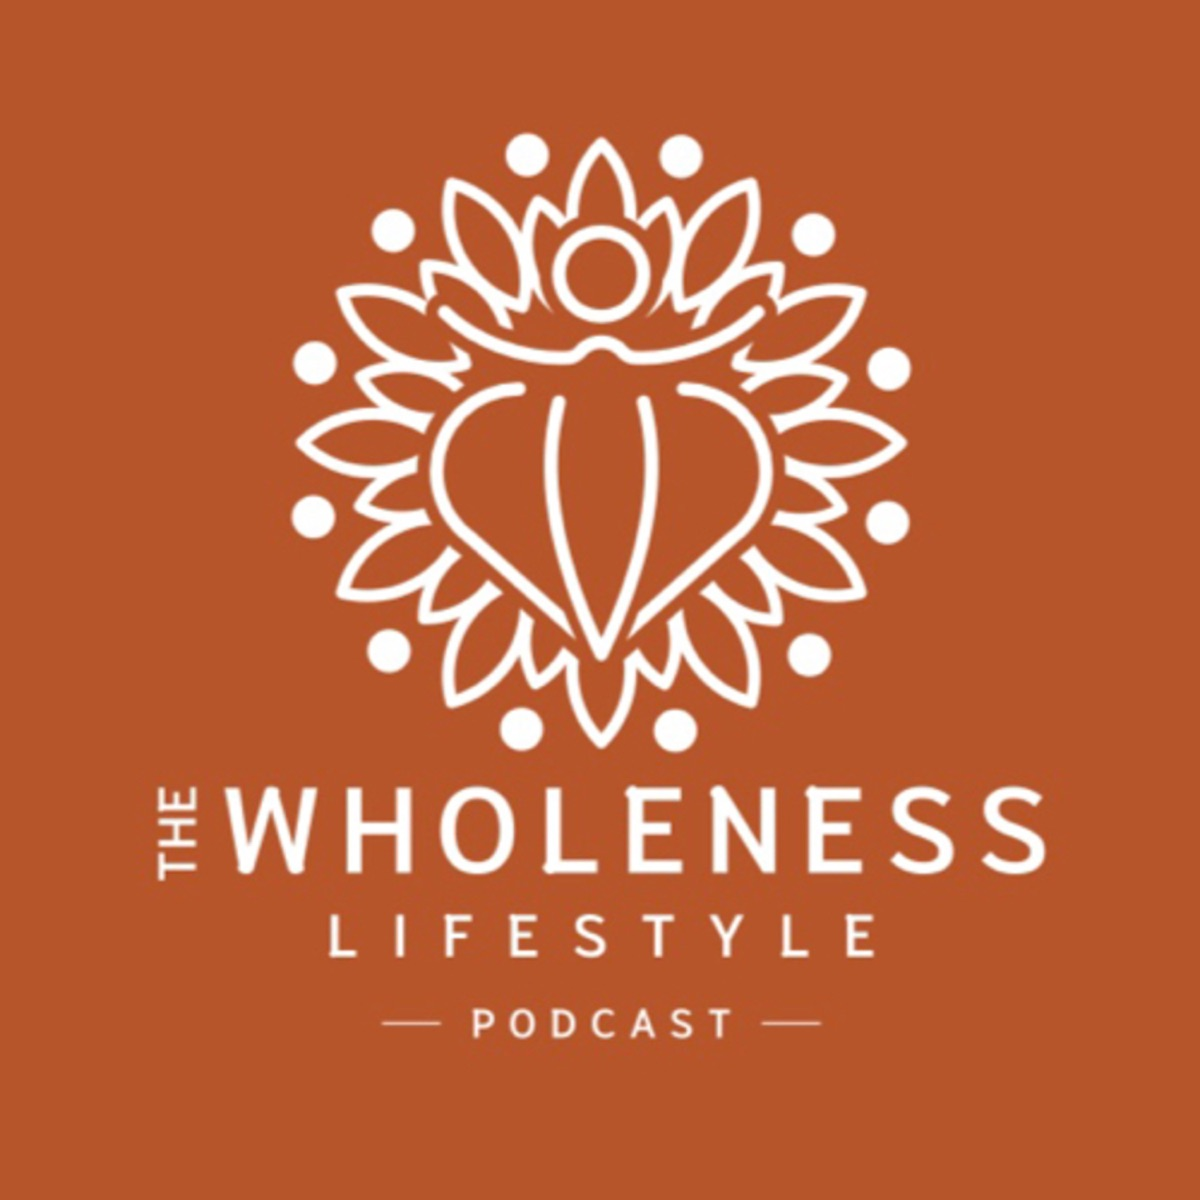 The Wholeness Lifestyle Podcast